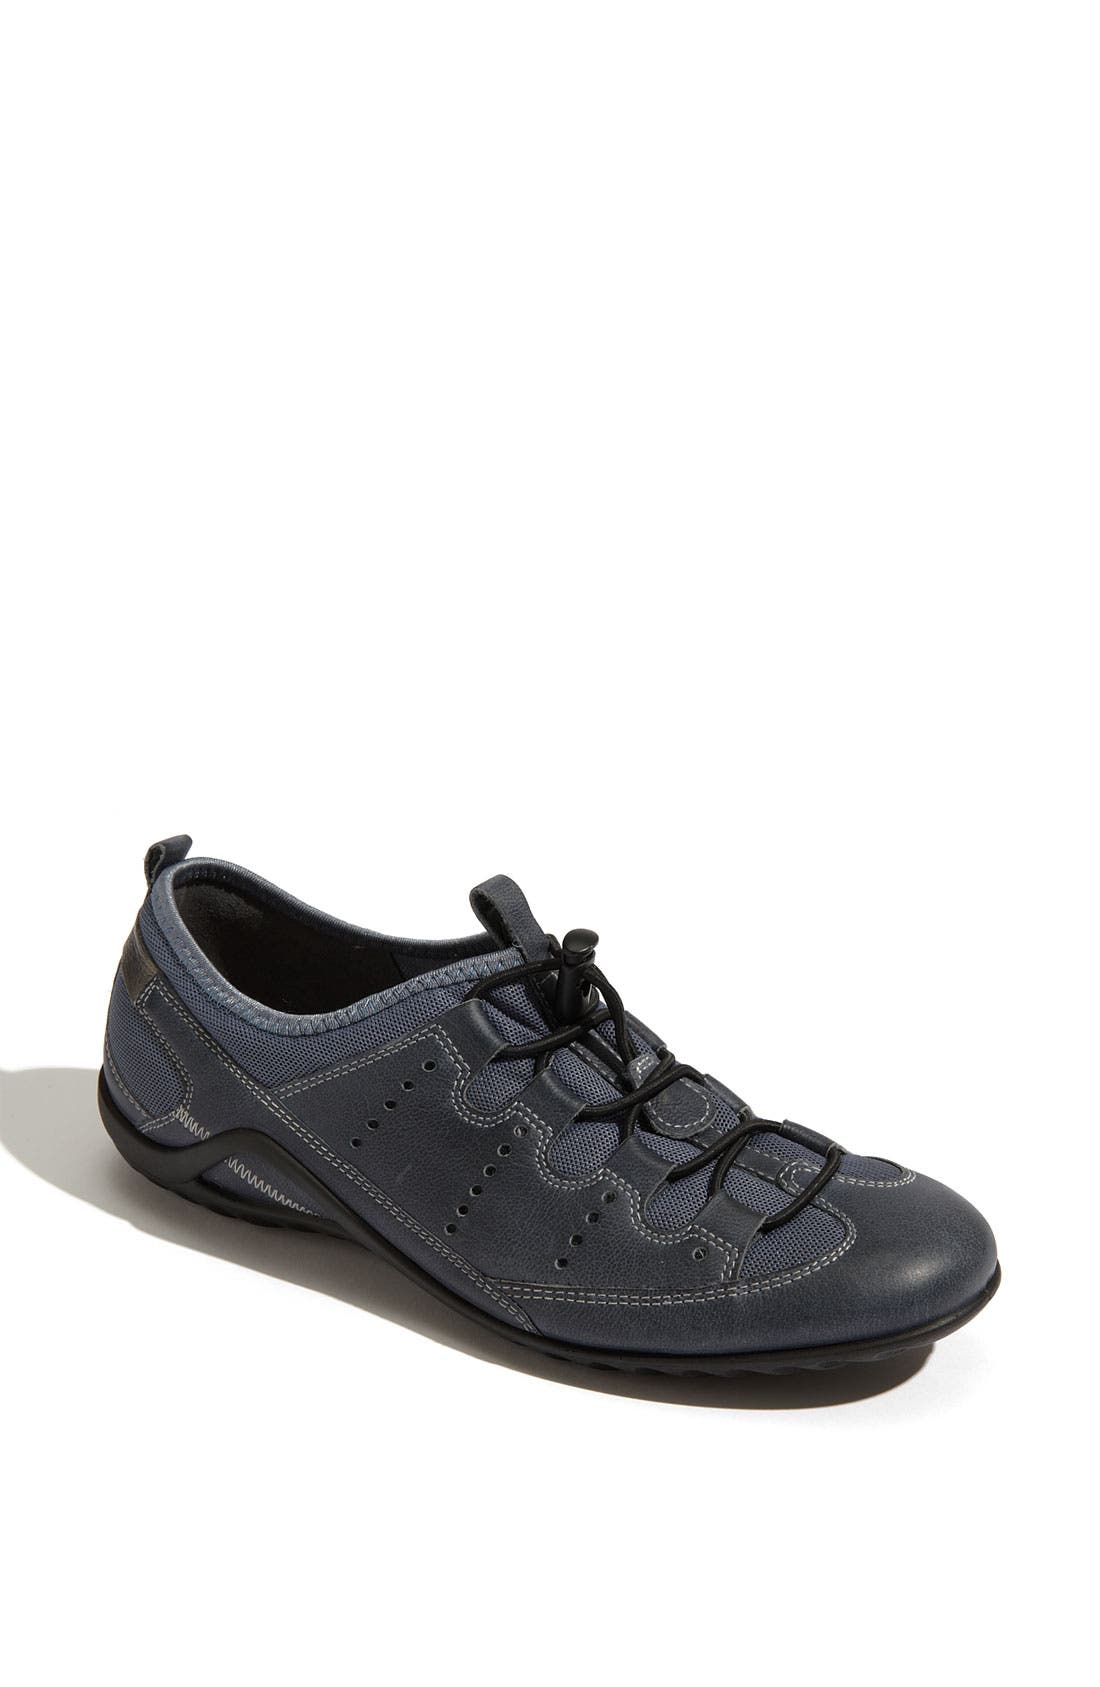 Main Image - ECCO 'Vibration II' Toggle Sneaker